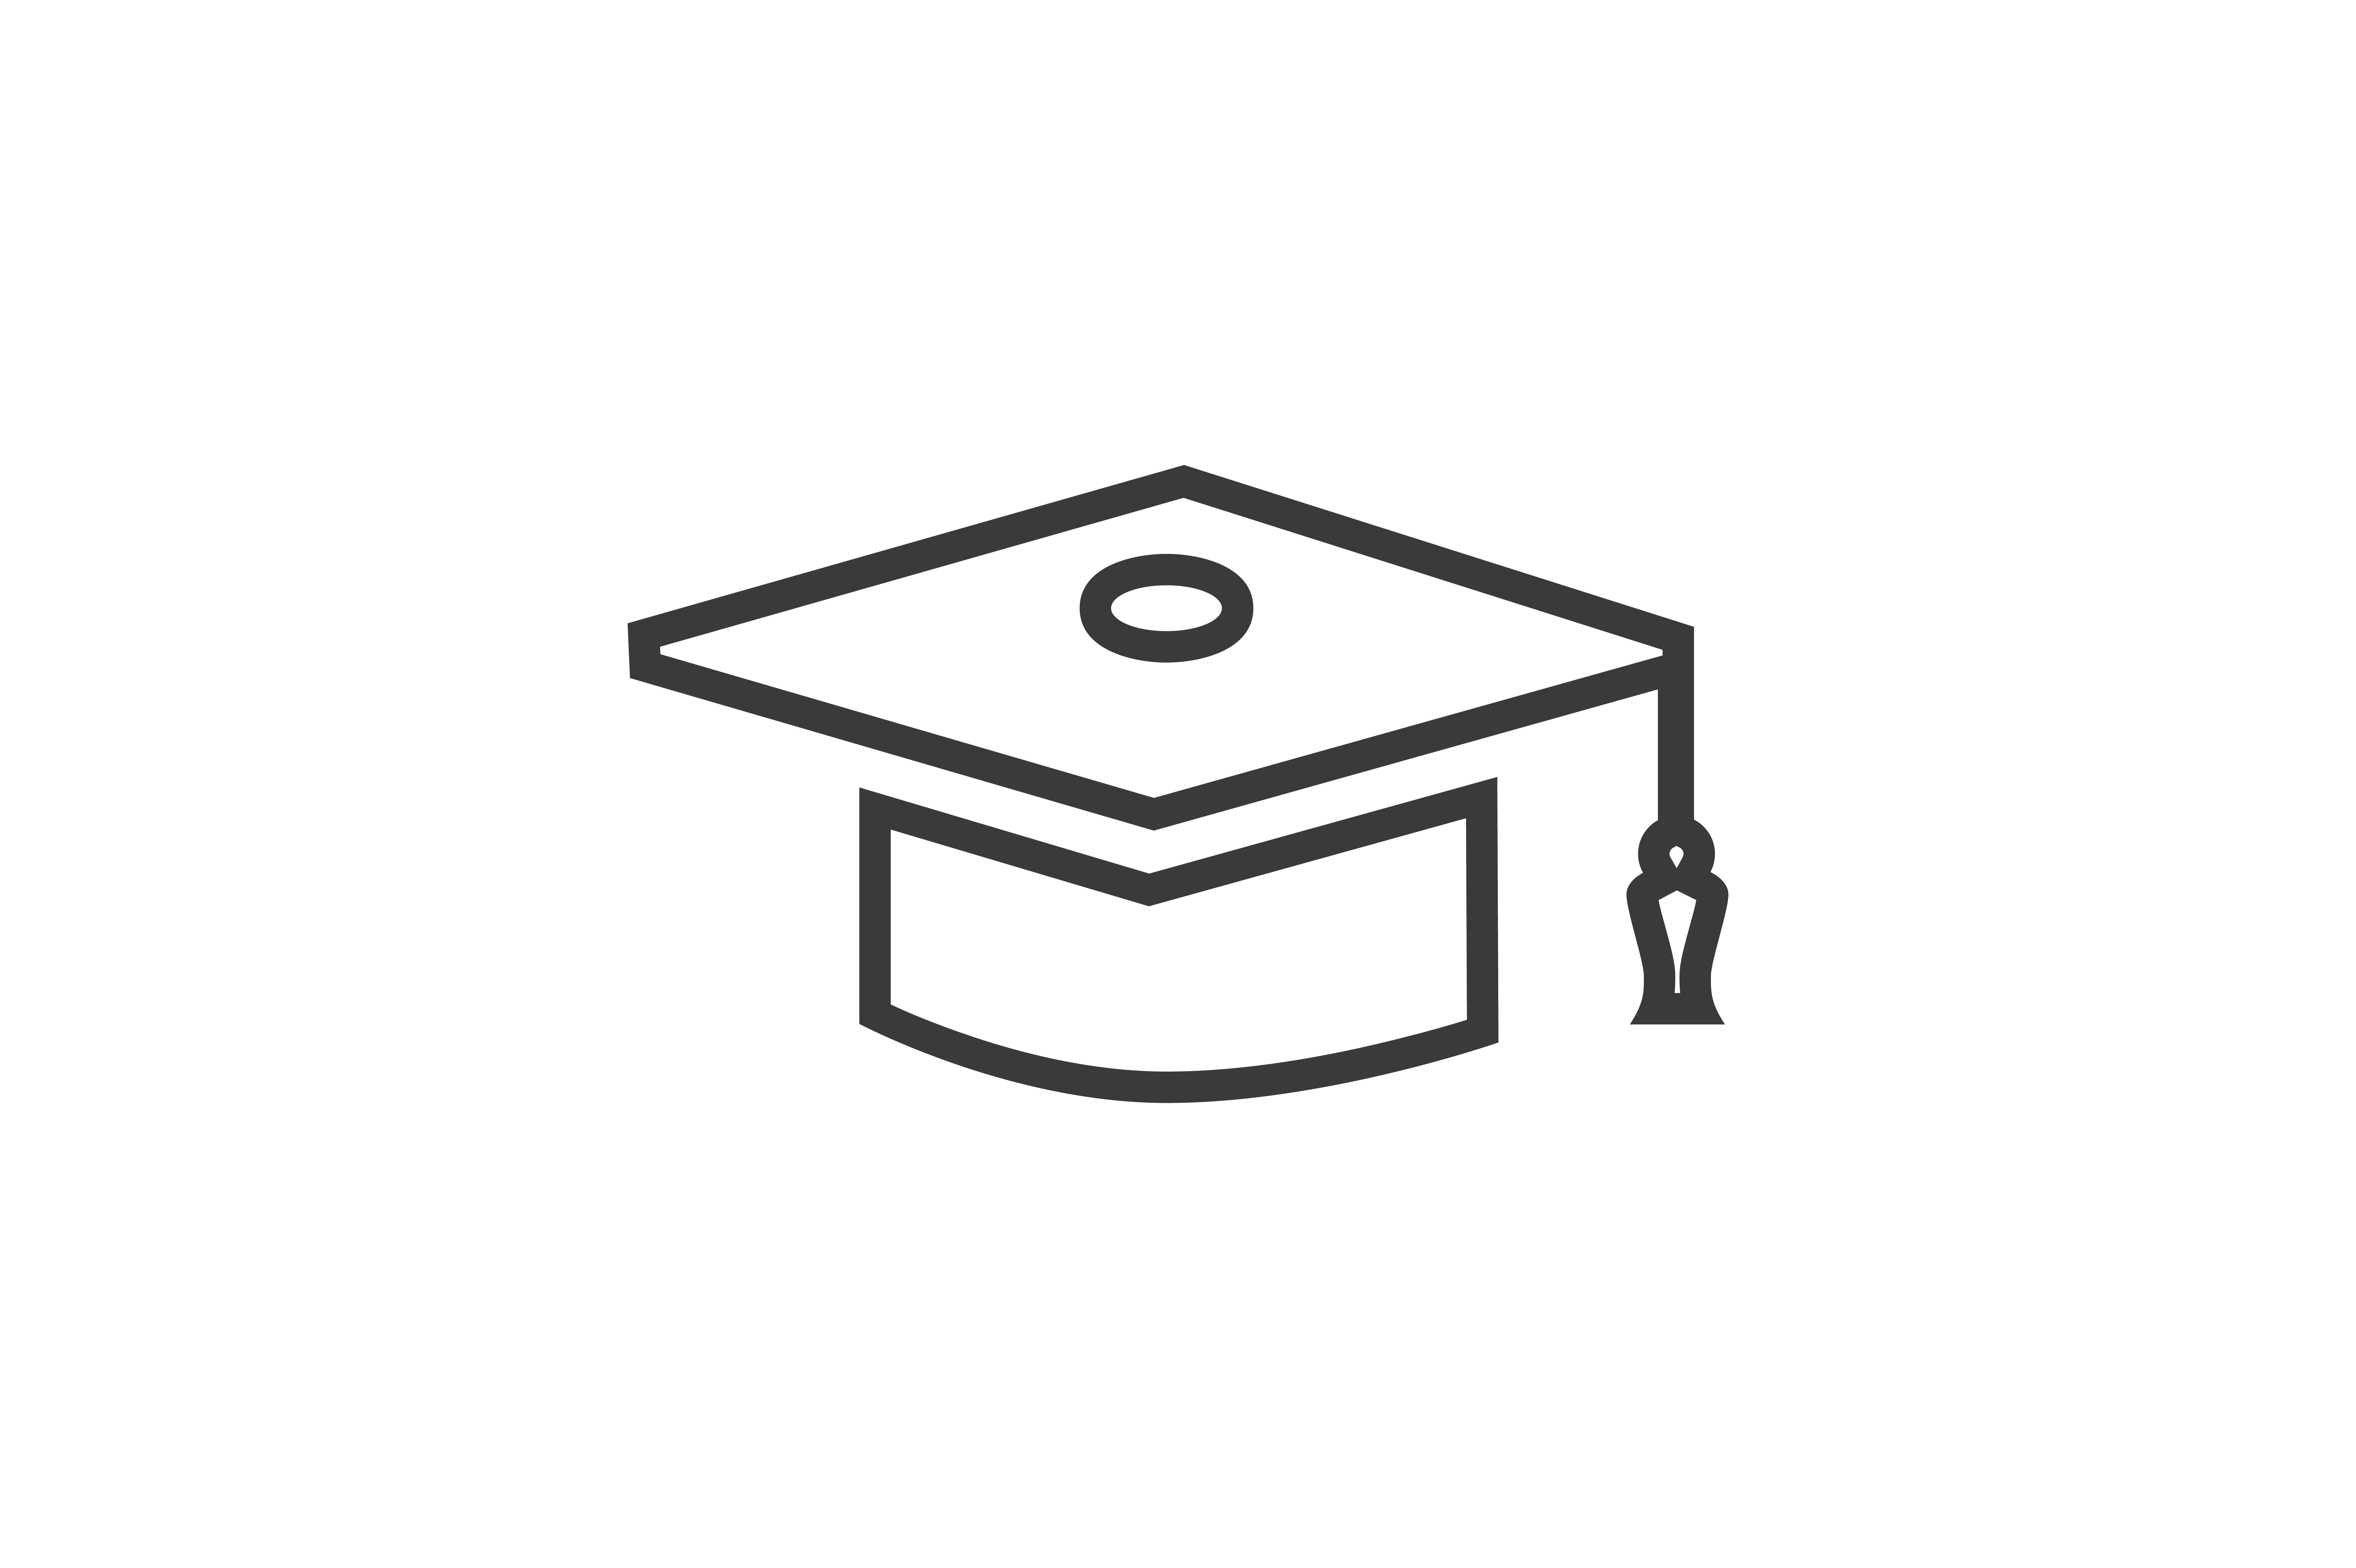 Download Free Graduate Icons Graphic By Zafreeloicon Creative Fabrica for Cricut Explore, Silhouette and other cutting machines.